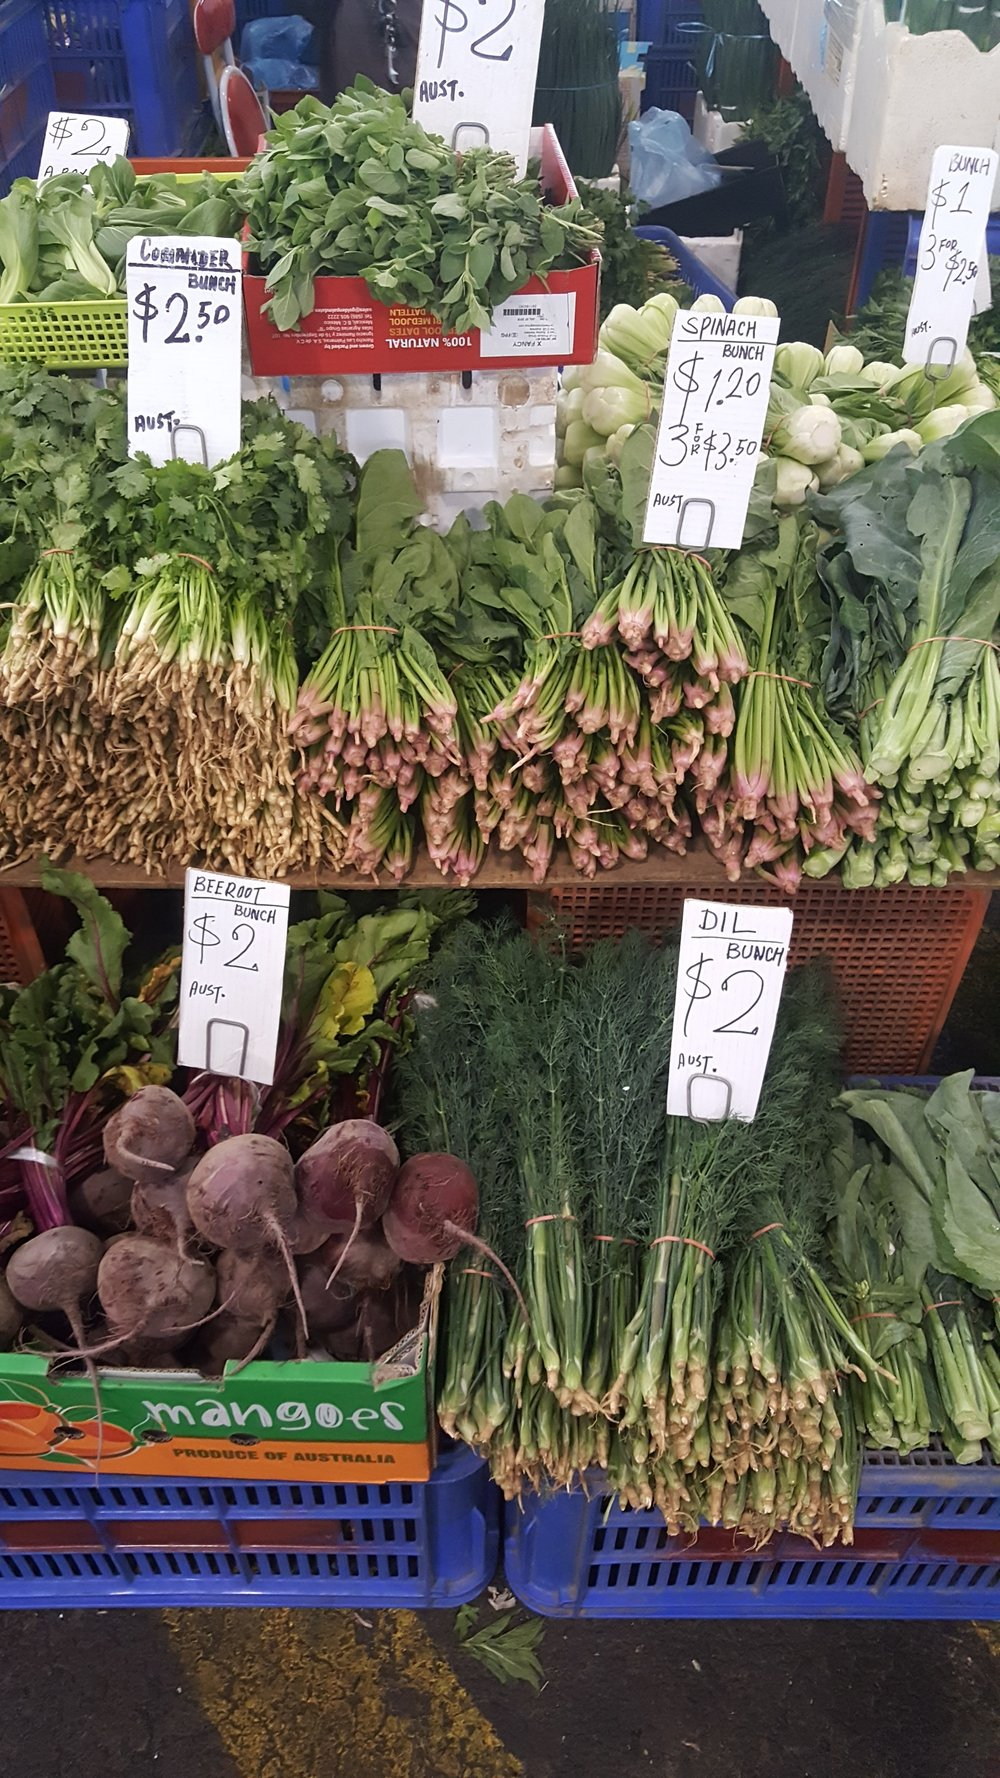 Affordable greens at the markets.